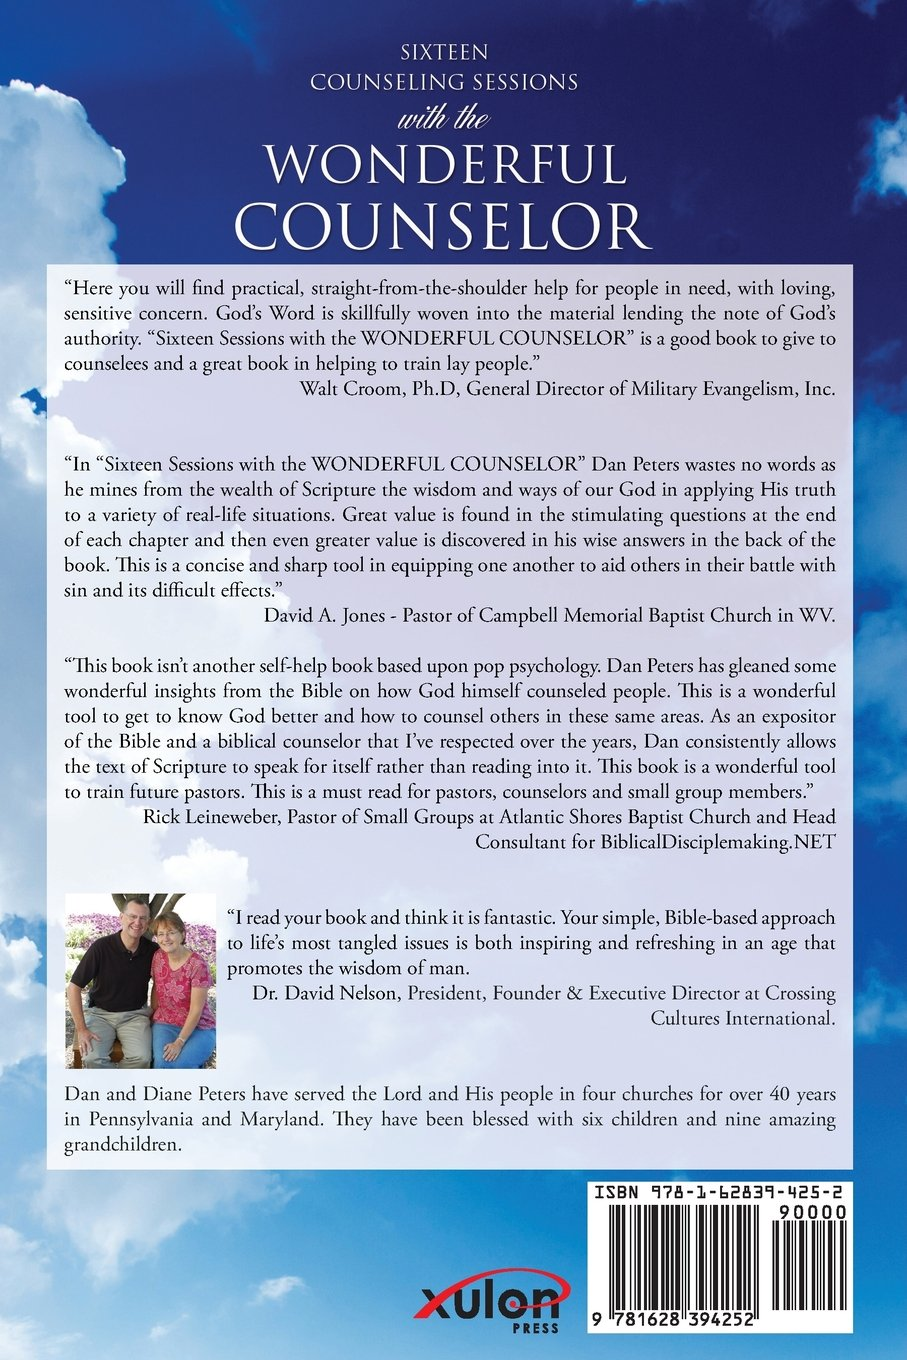 Sixteen Counseling Sessions with the WONDERFUL COUNSELOR